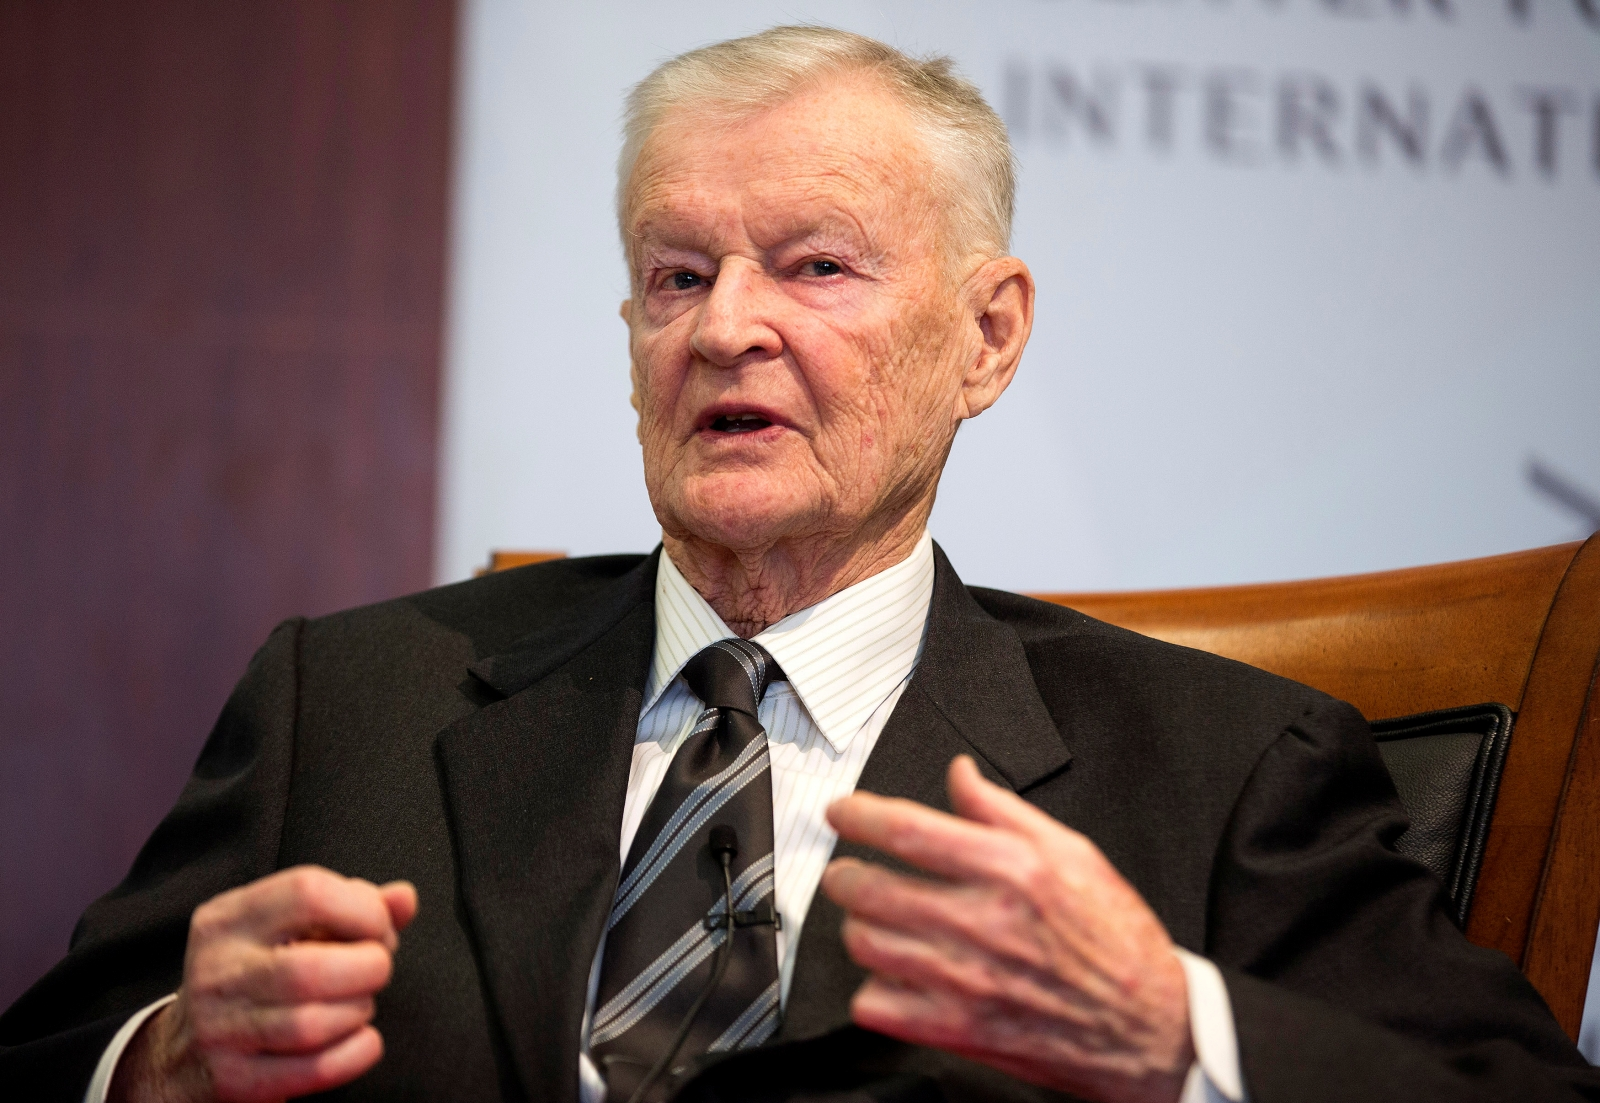 Zbigniew Brzezinski, former United States national security advisor, dead at 89